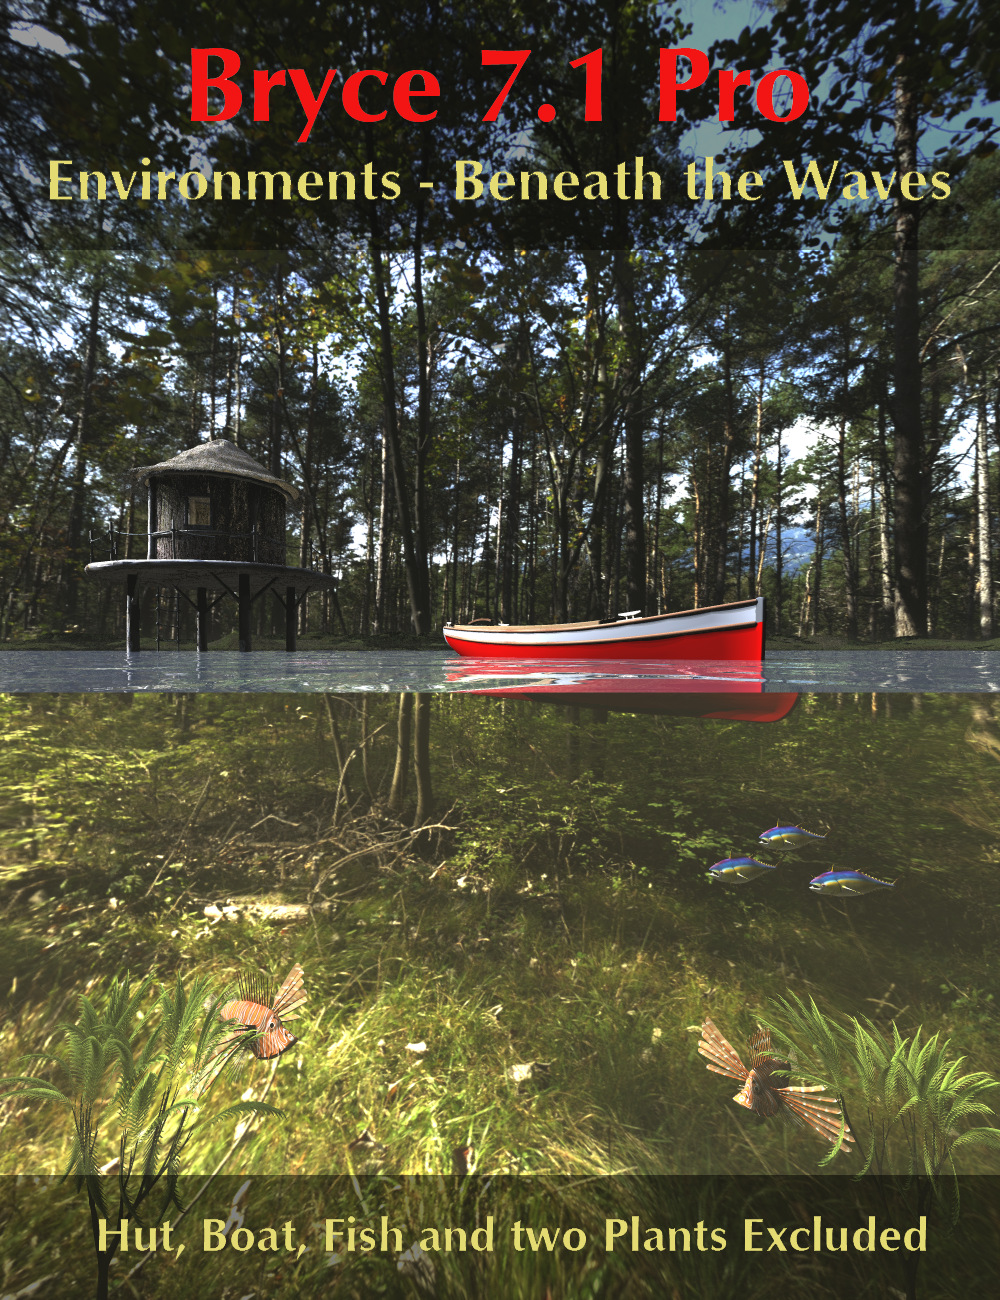 Bryce 7.1 Pro - Environments - Beneath the Waves by: David BrinnenHoro, 3D Models by Daz 3D